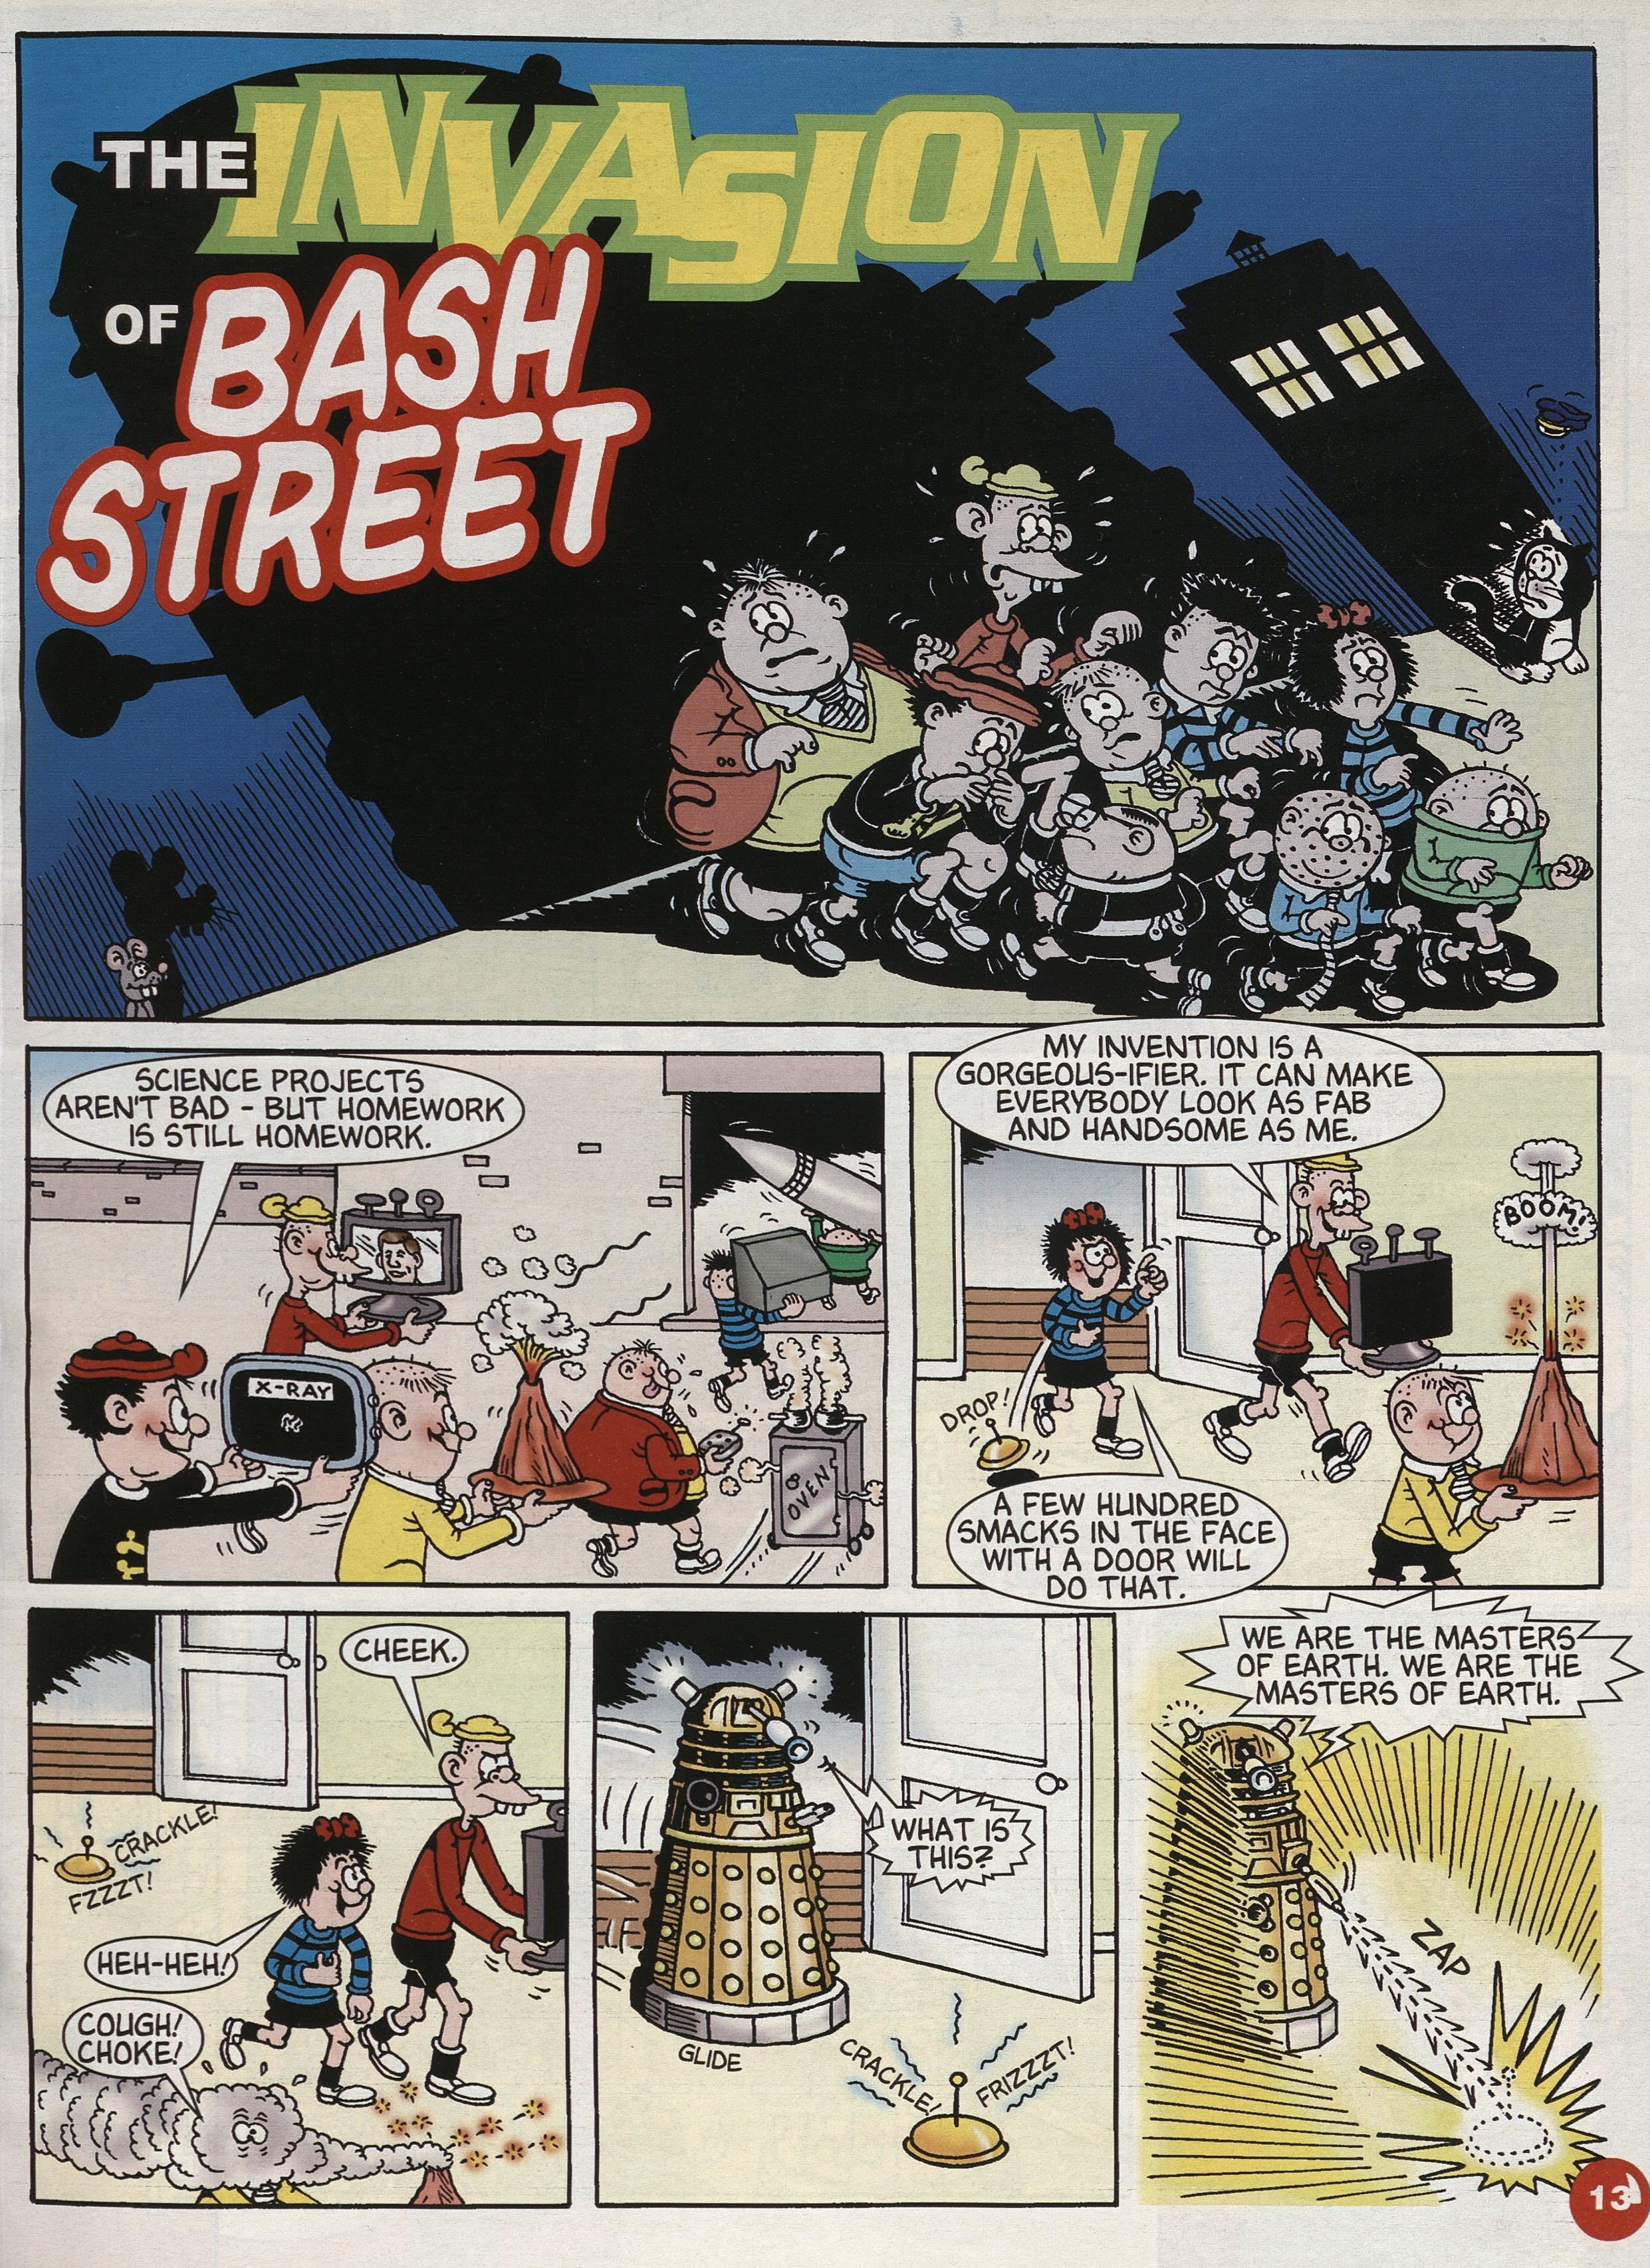 Beano Max Volume 1 March 2007 featured a Doctor Who-themed story involving the Bash Street Kids